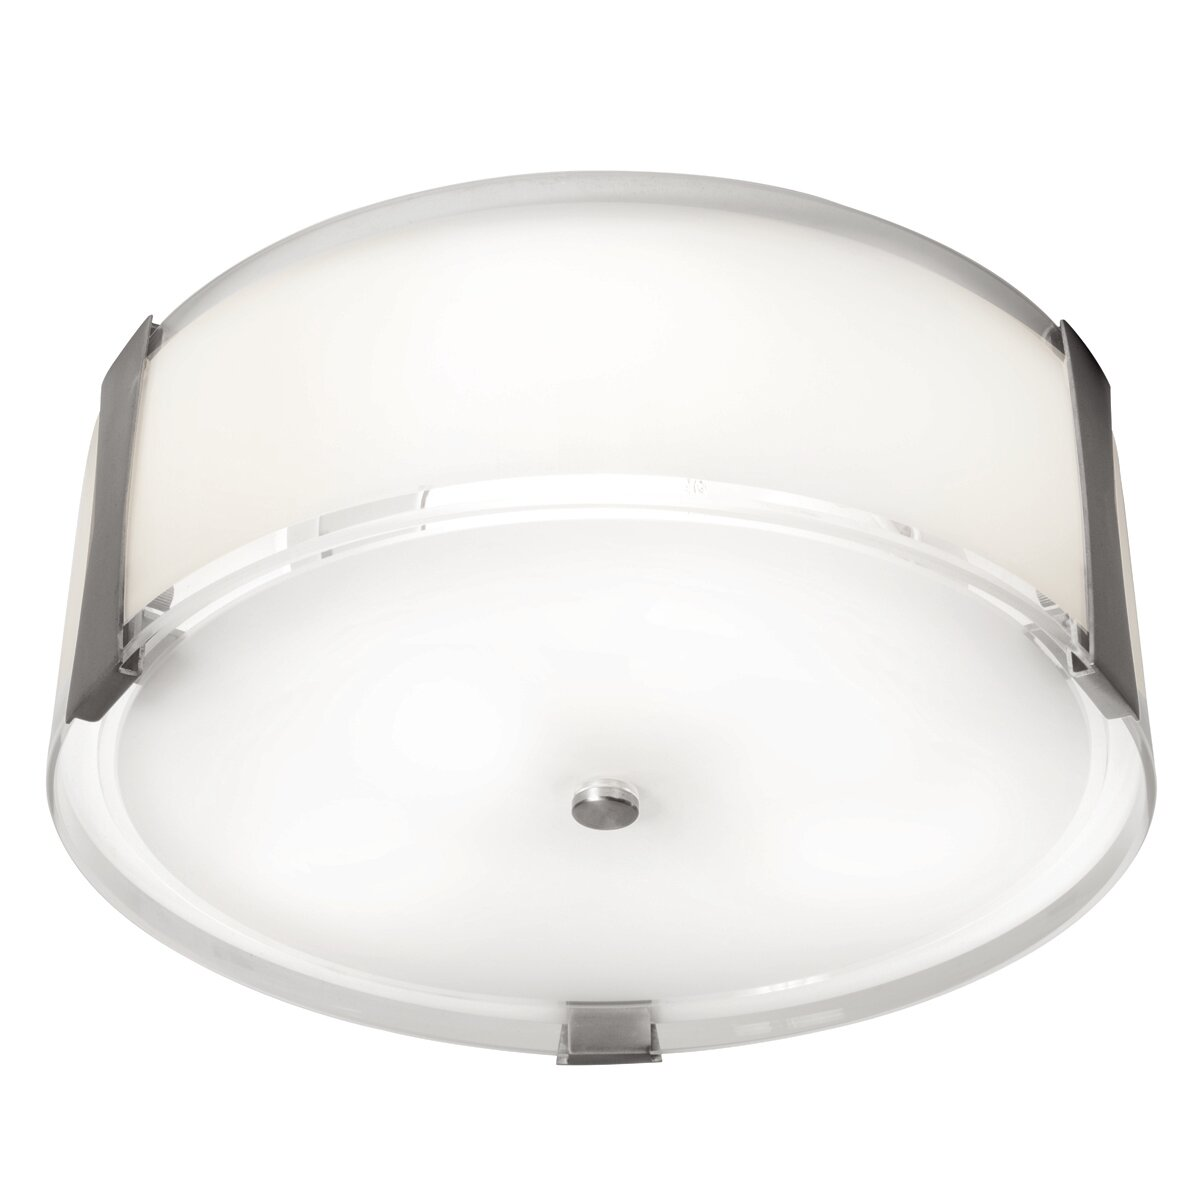 Access Lighting Tara 3 Light Flush Mount & Reviews  Wayfair. Cabinet Factory. Yellow Office Chair. Decorative Shower Curtains. Tufted Dining Chairs With Nailheads. Window Treatments. Hardyboard. Wall Mounted Track Lighting. Closet Sliding Doors